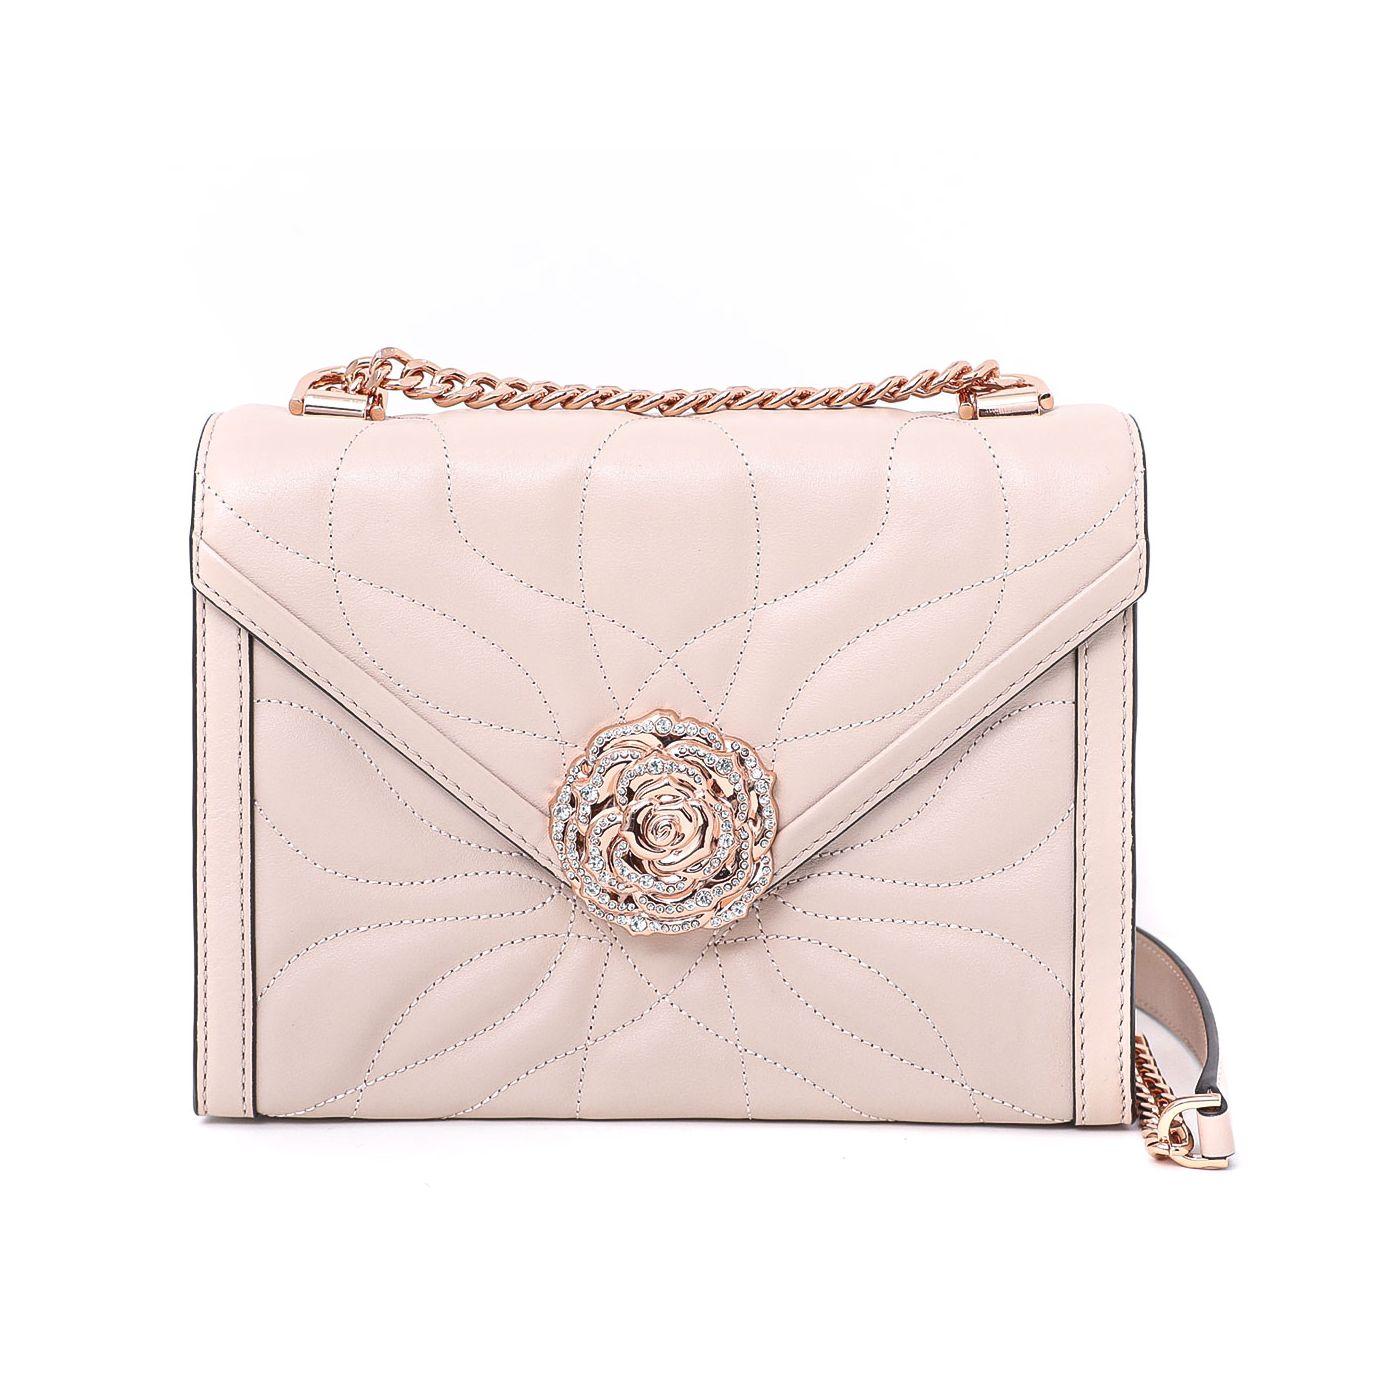 Michael Kors Soft Pink Whitney Petal Bag